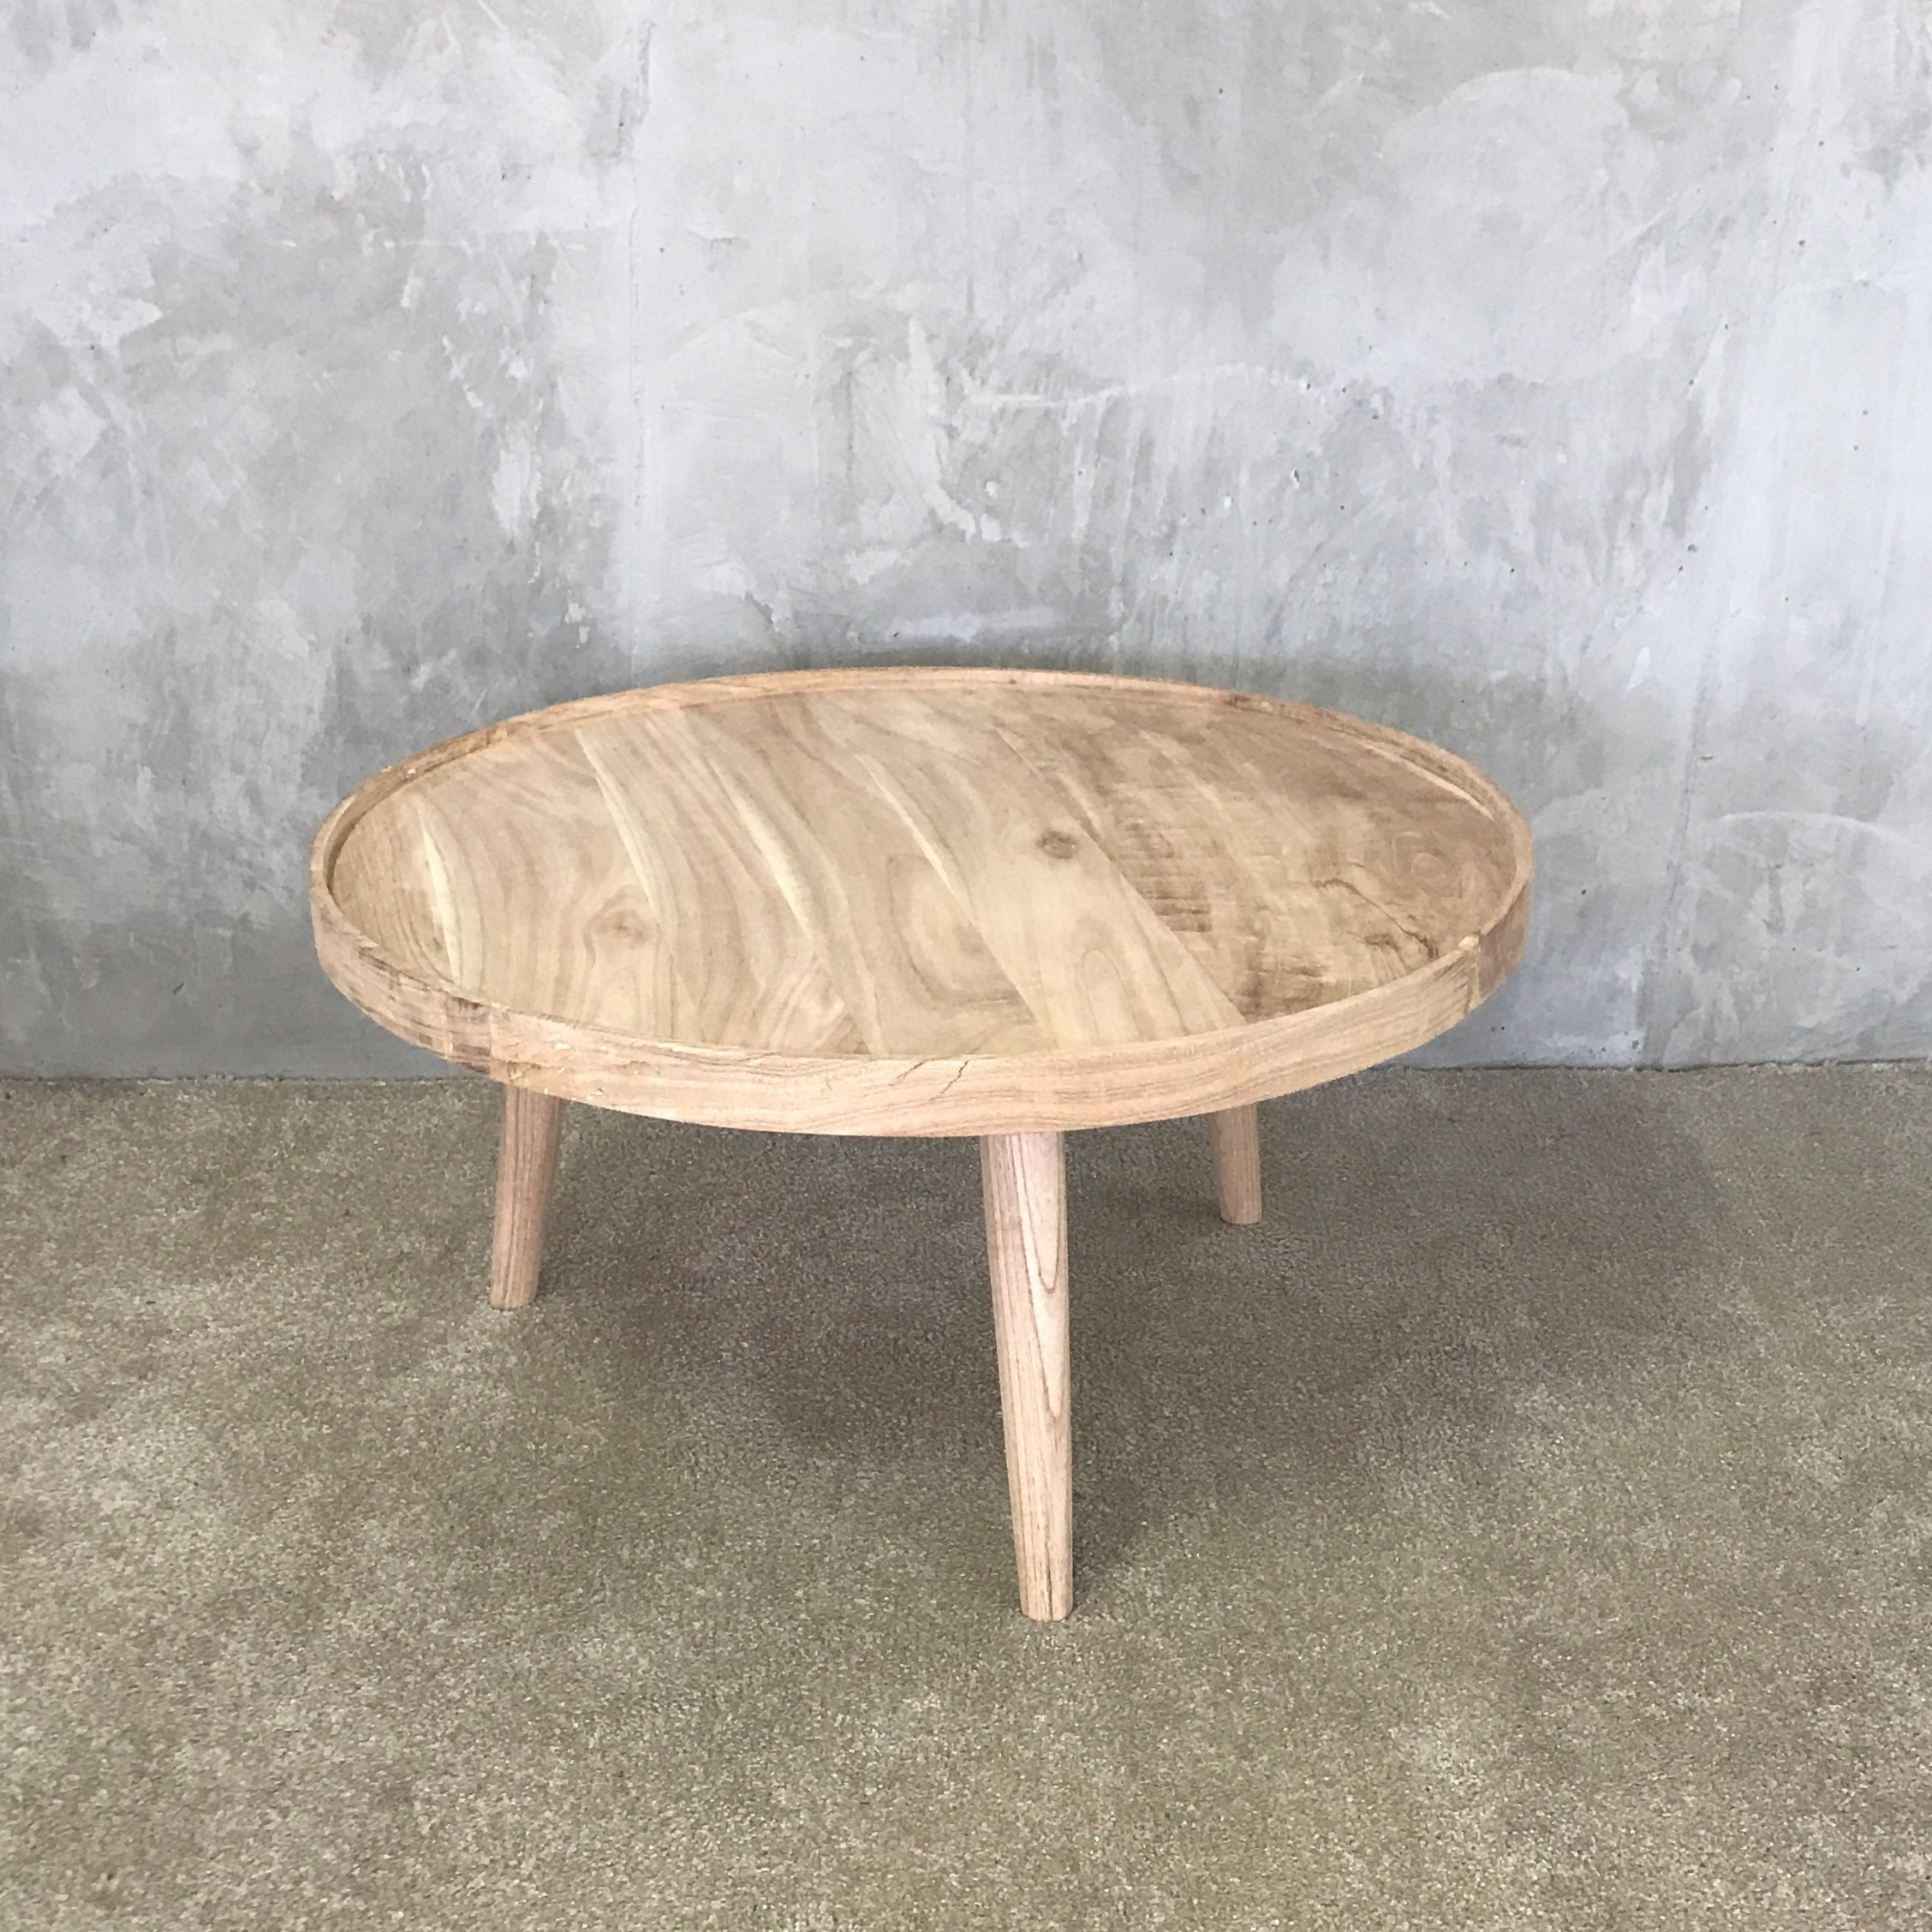 Melonwoods Indonesian Furniture | Quality Wooden Furniturelyre intended for Lyre Coffee Tables (Image 22 of 30)